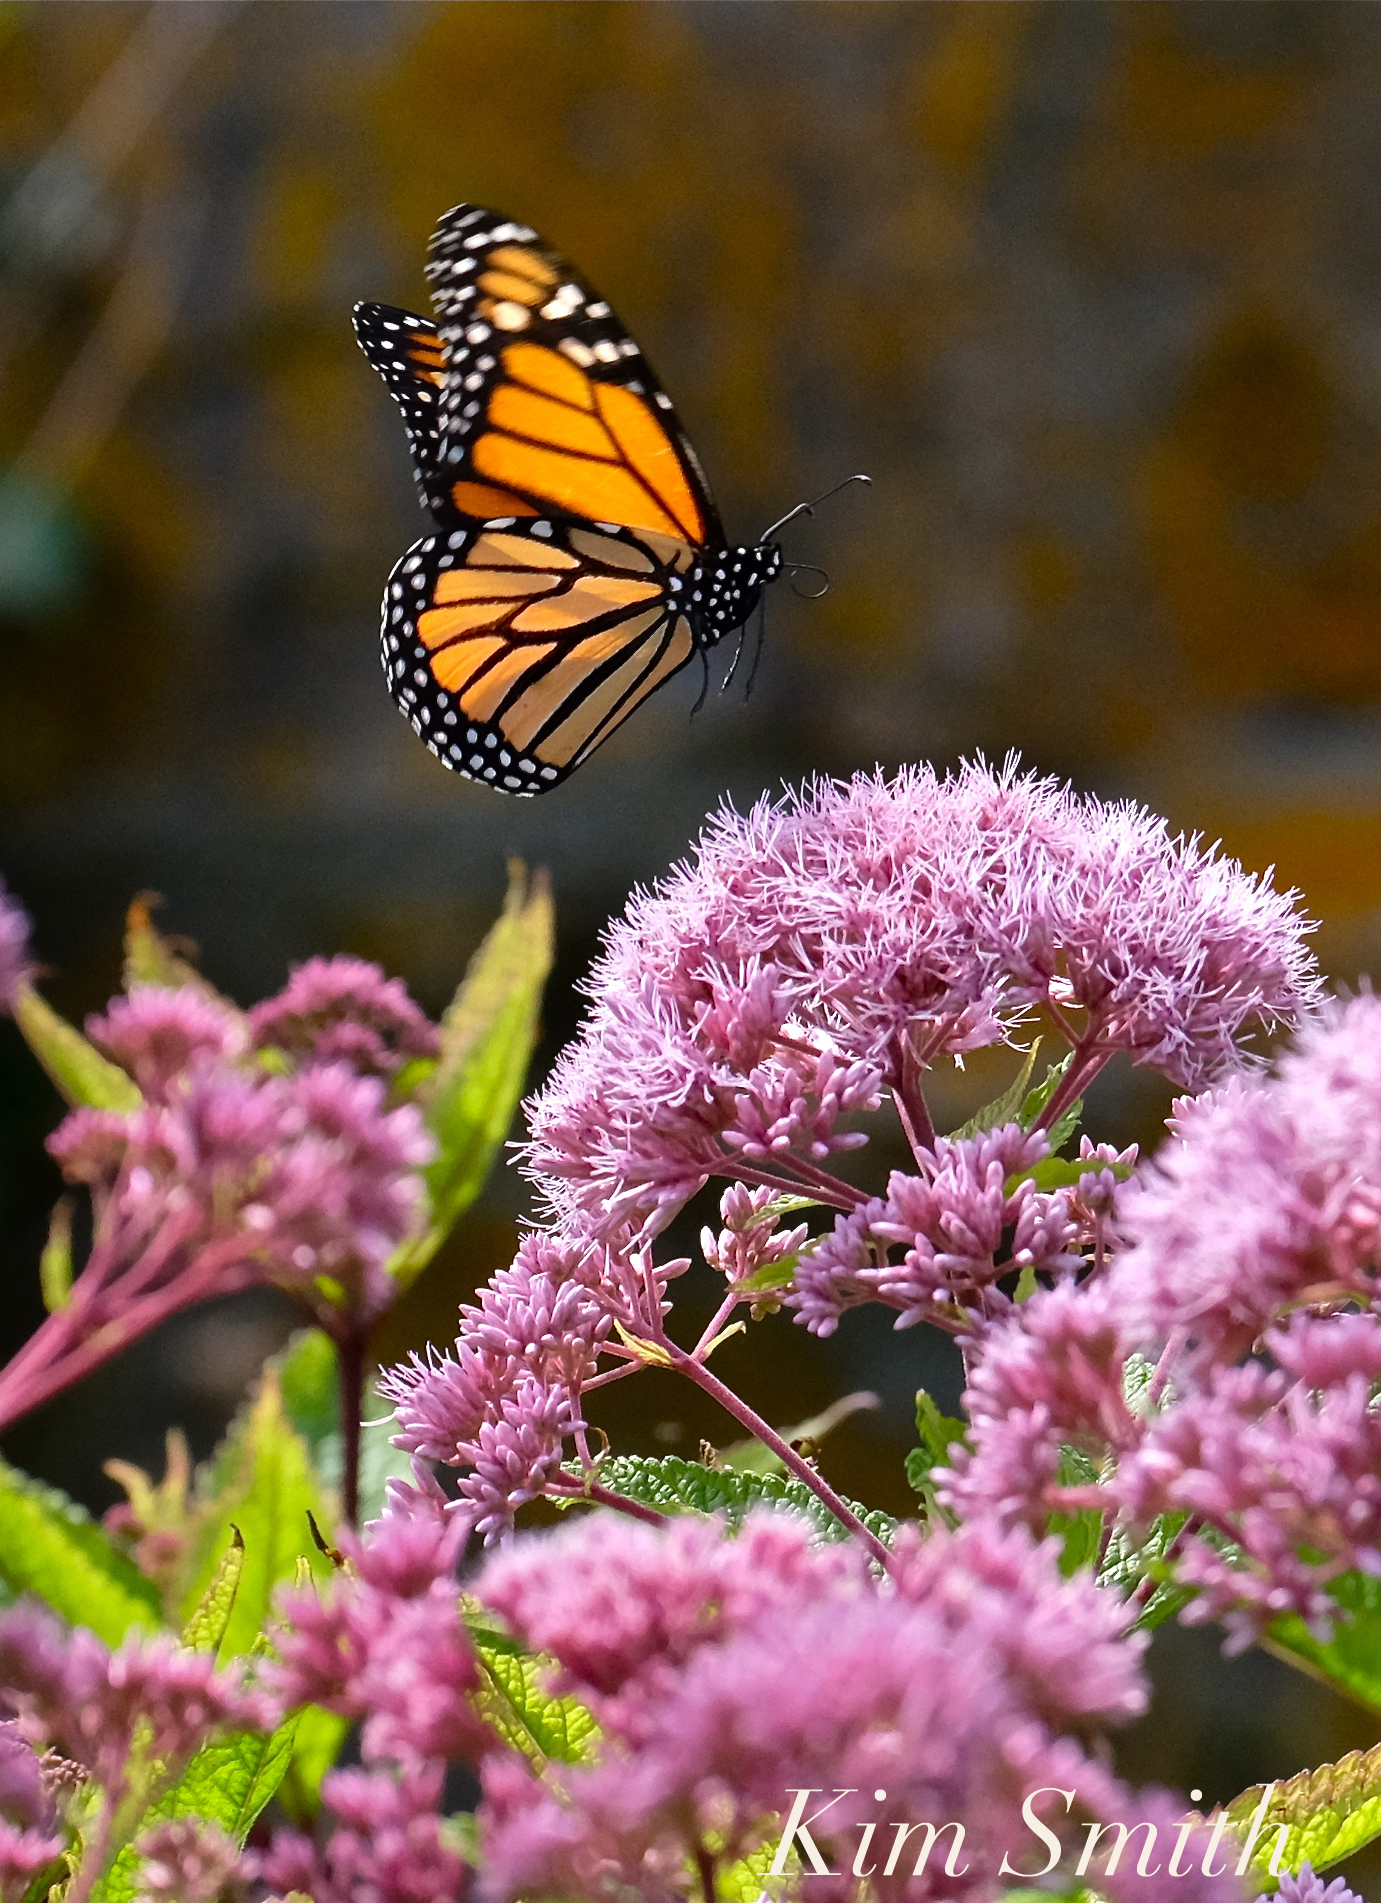 Monarchs in mexico kim smith designs page 2 a post shared by kim smith kimsmithdesigns on aug 8 2017 at 335pm pdt biocorpaavc Gallery